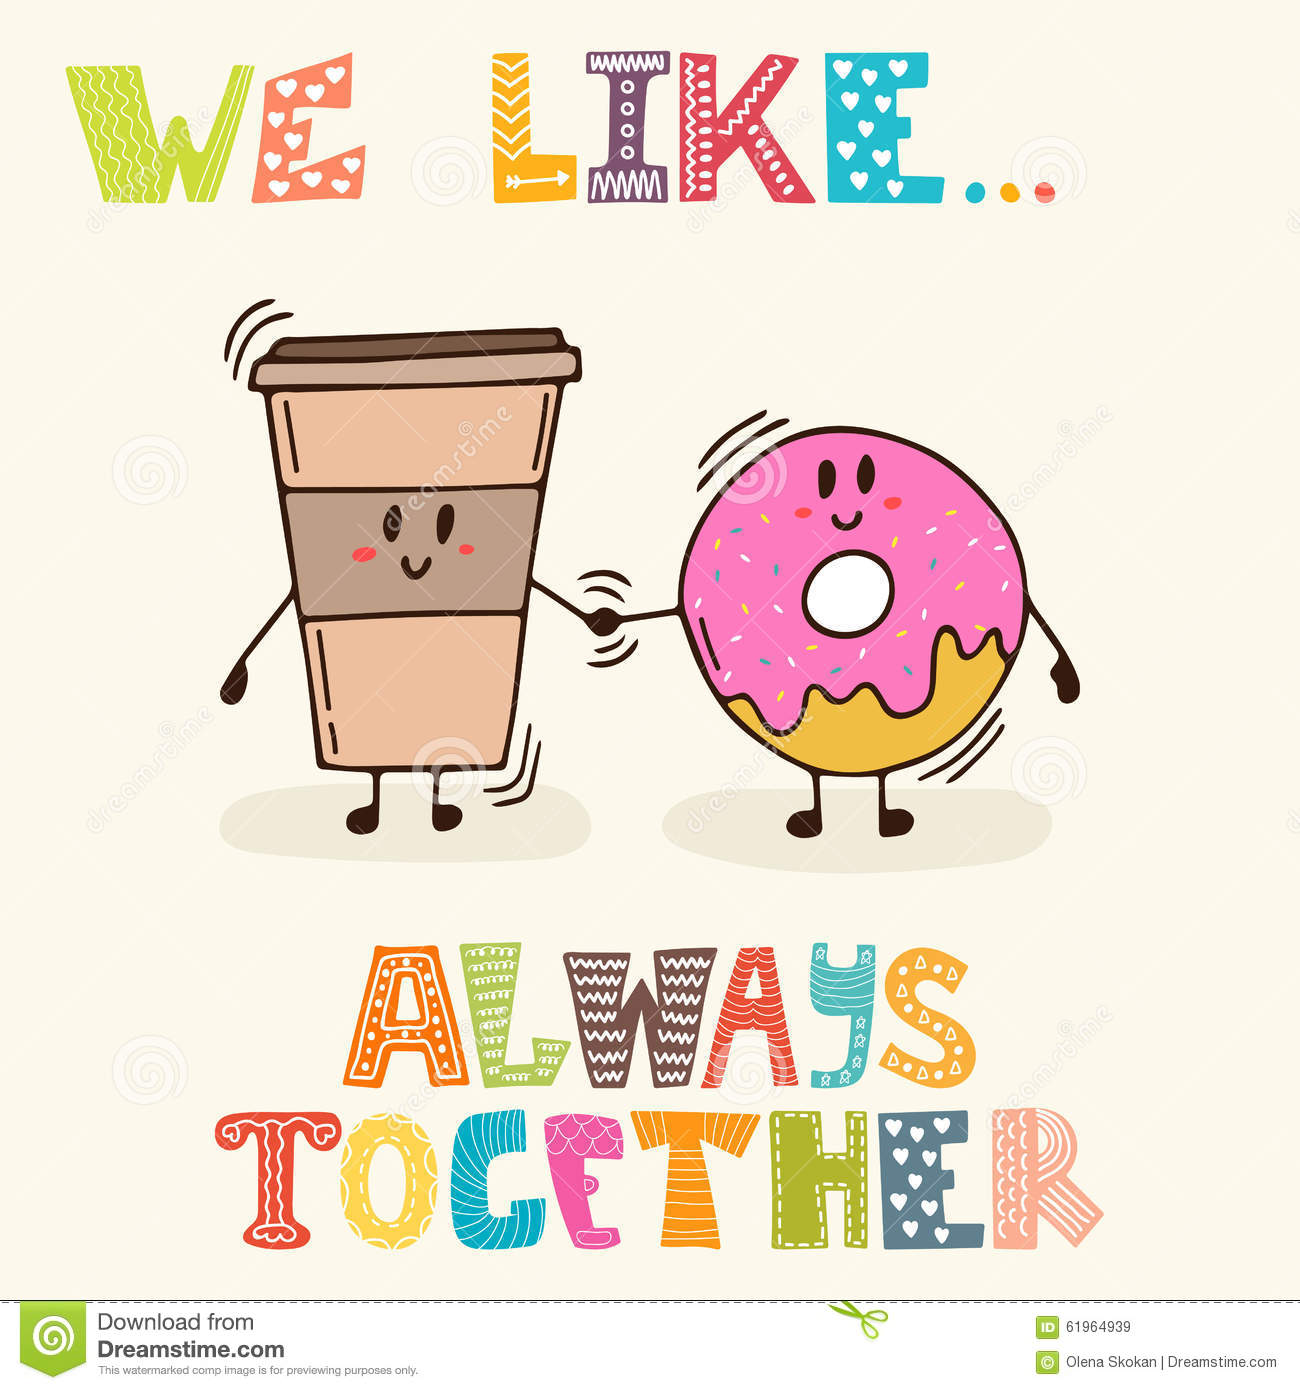 Cute Together Forever Wallpaper We Like Always Together Cute Characters Coffee And